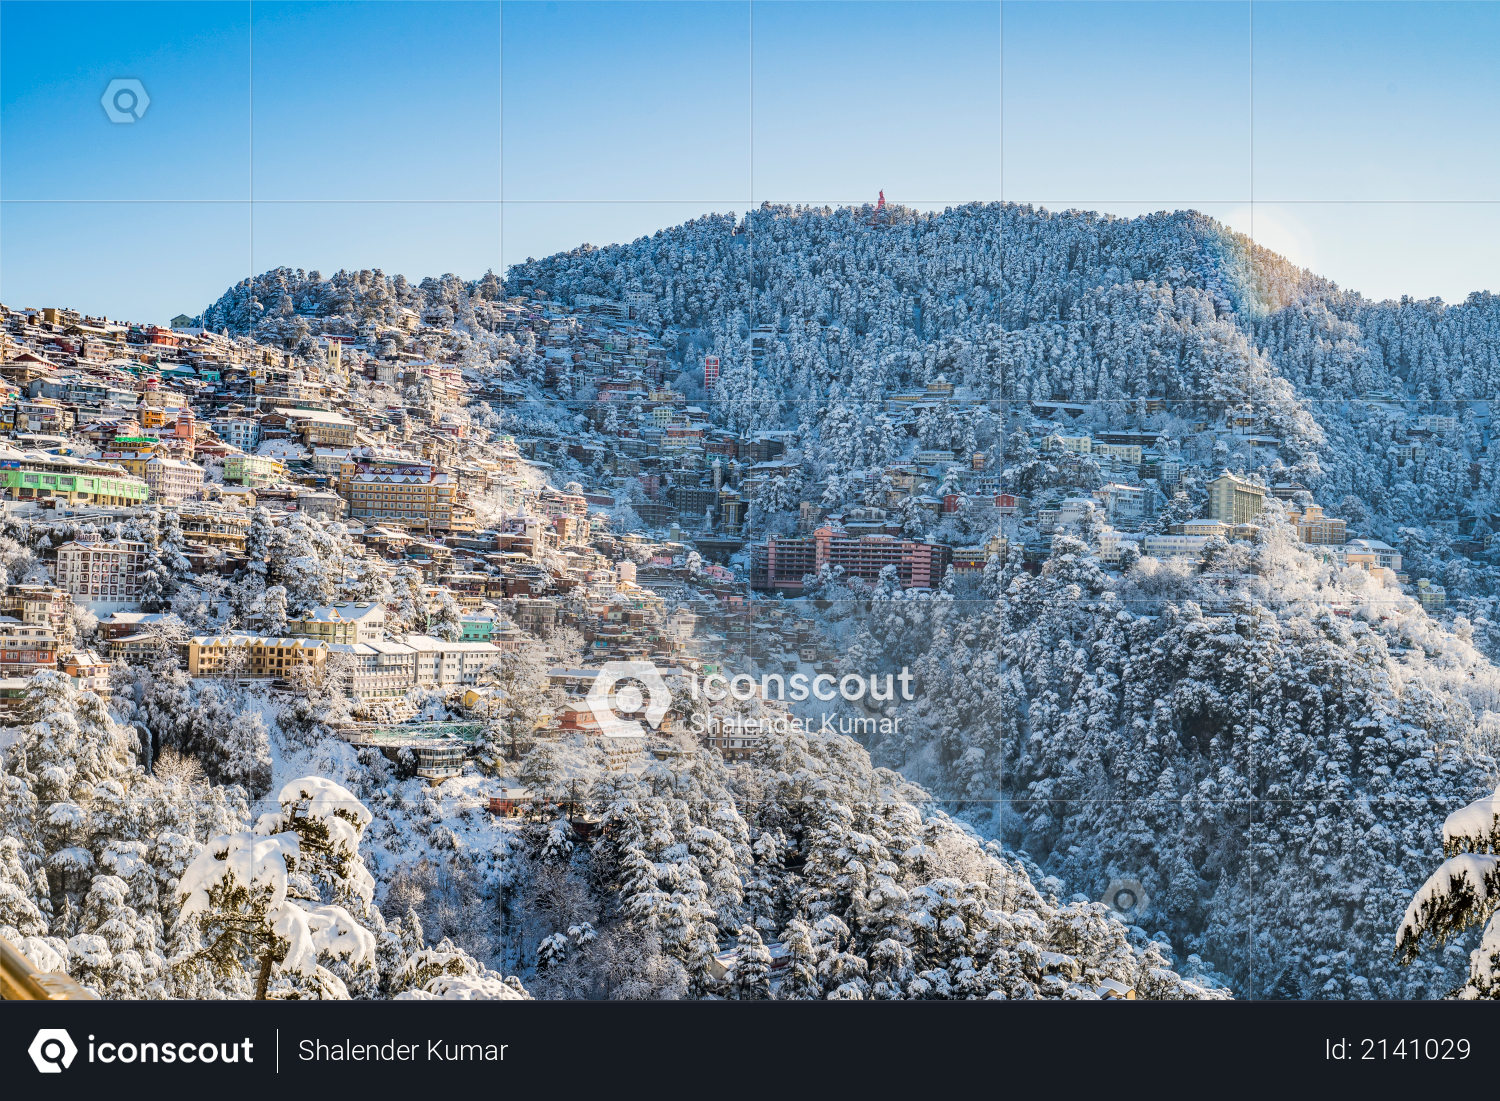 The Ridge road is a large open space, located in the heart of Shimla, the capital city of Himachal Pradesh, India Photo